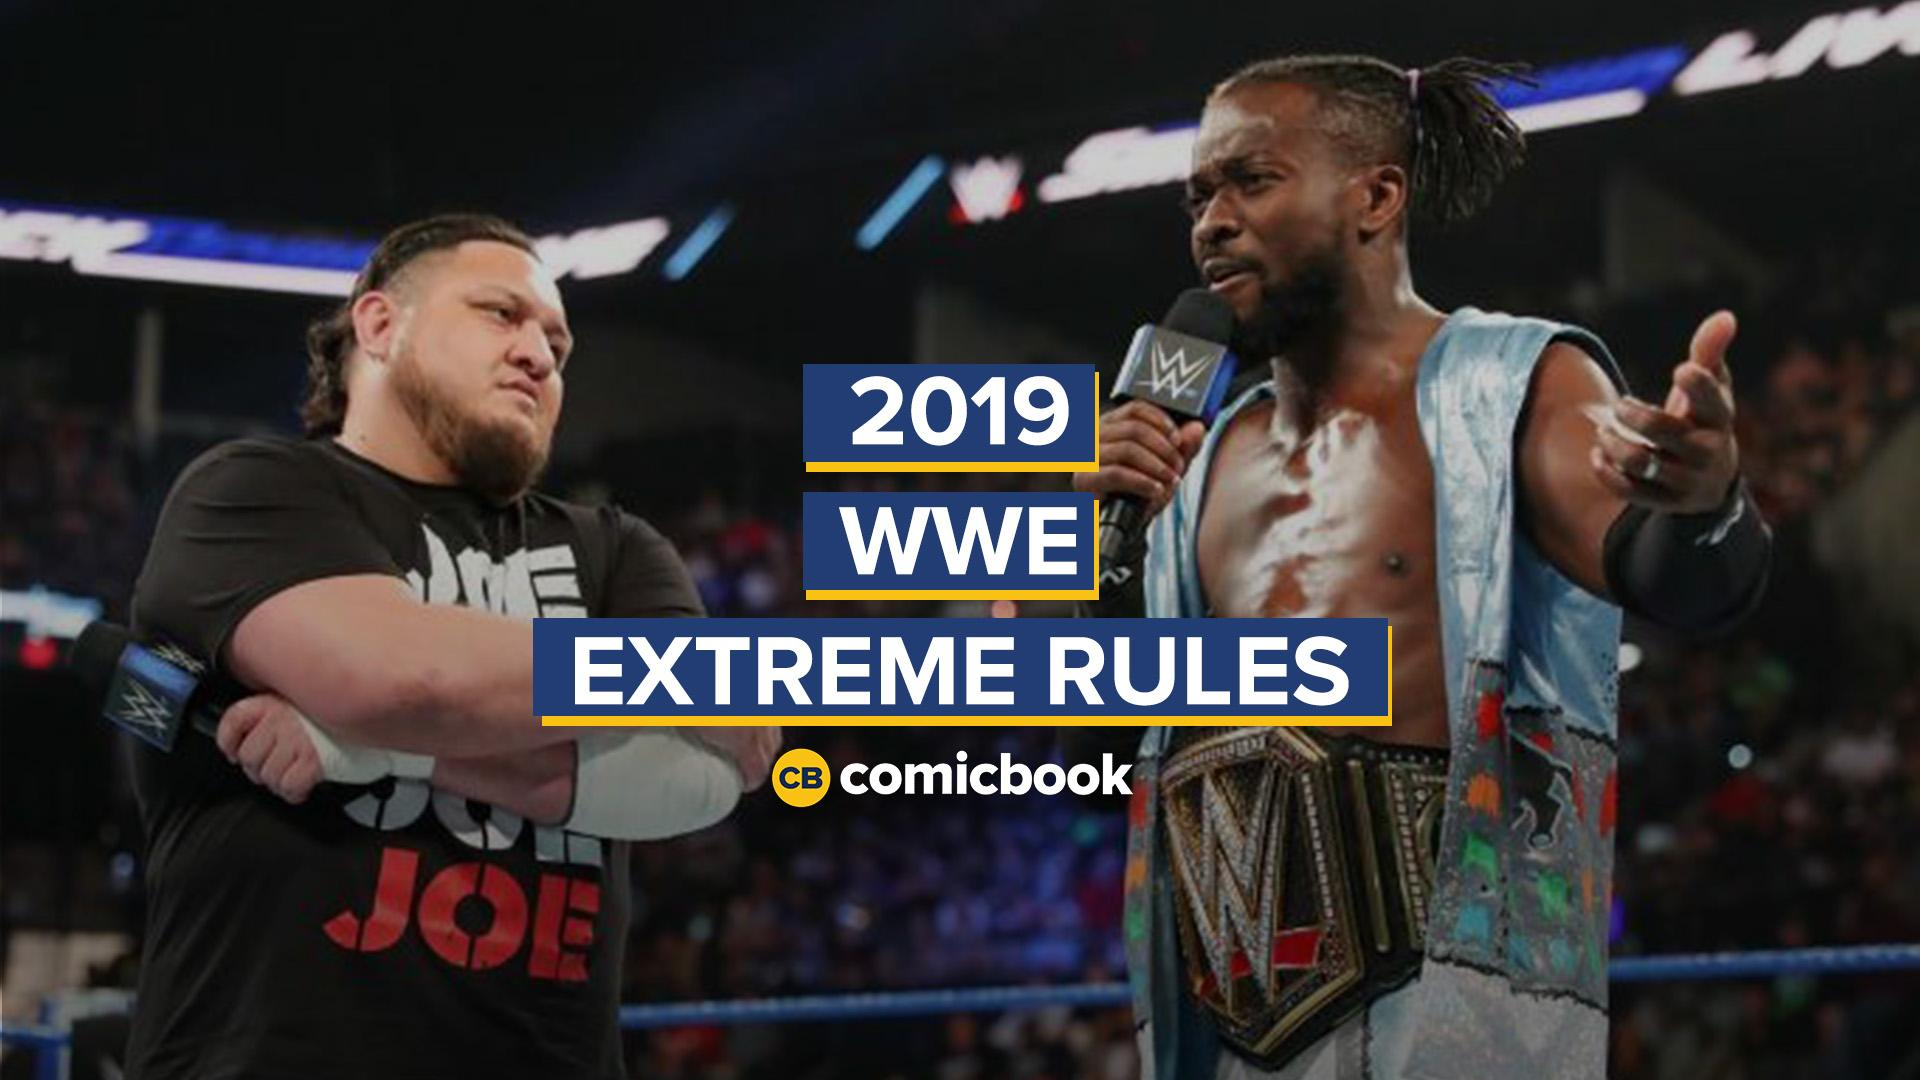 2019 WWE Extreme Rules Highlights